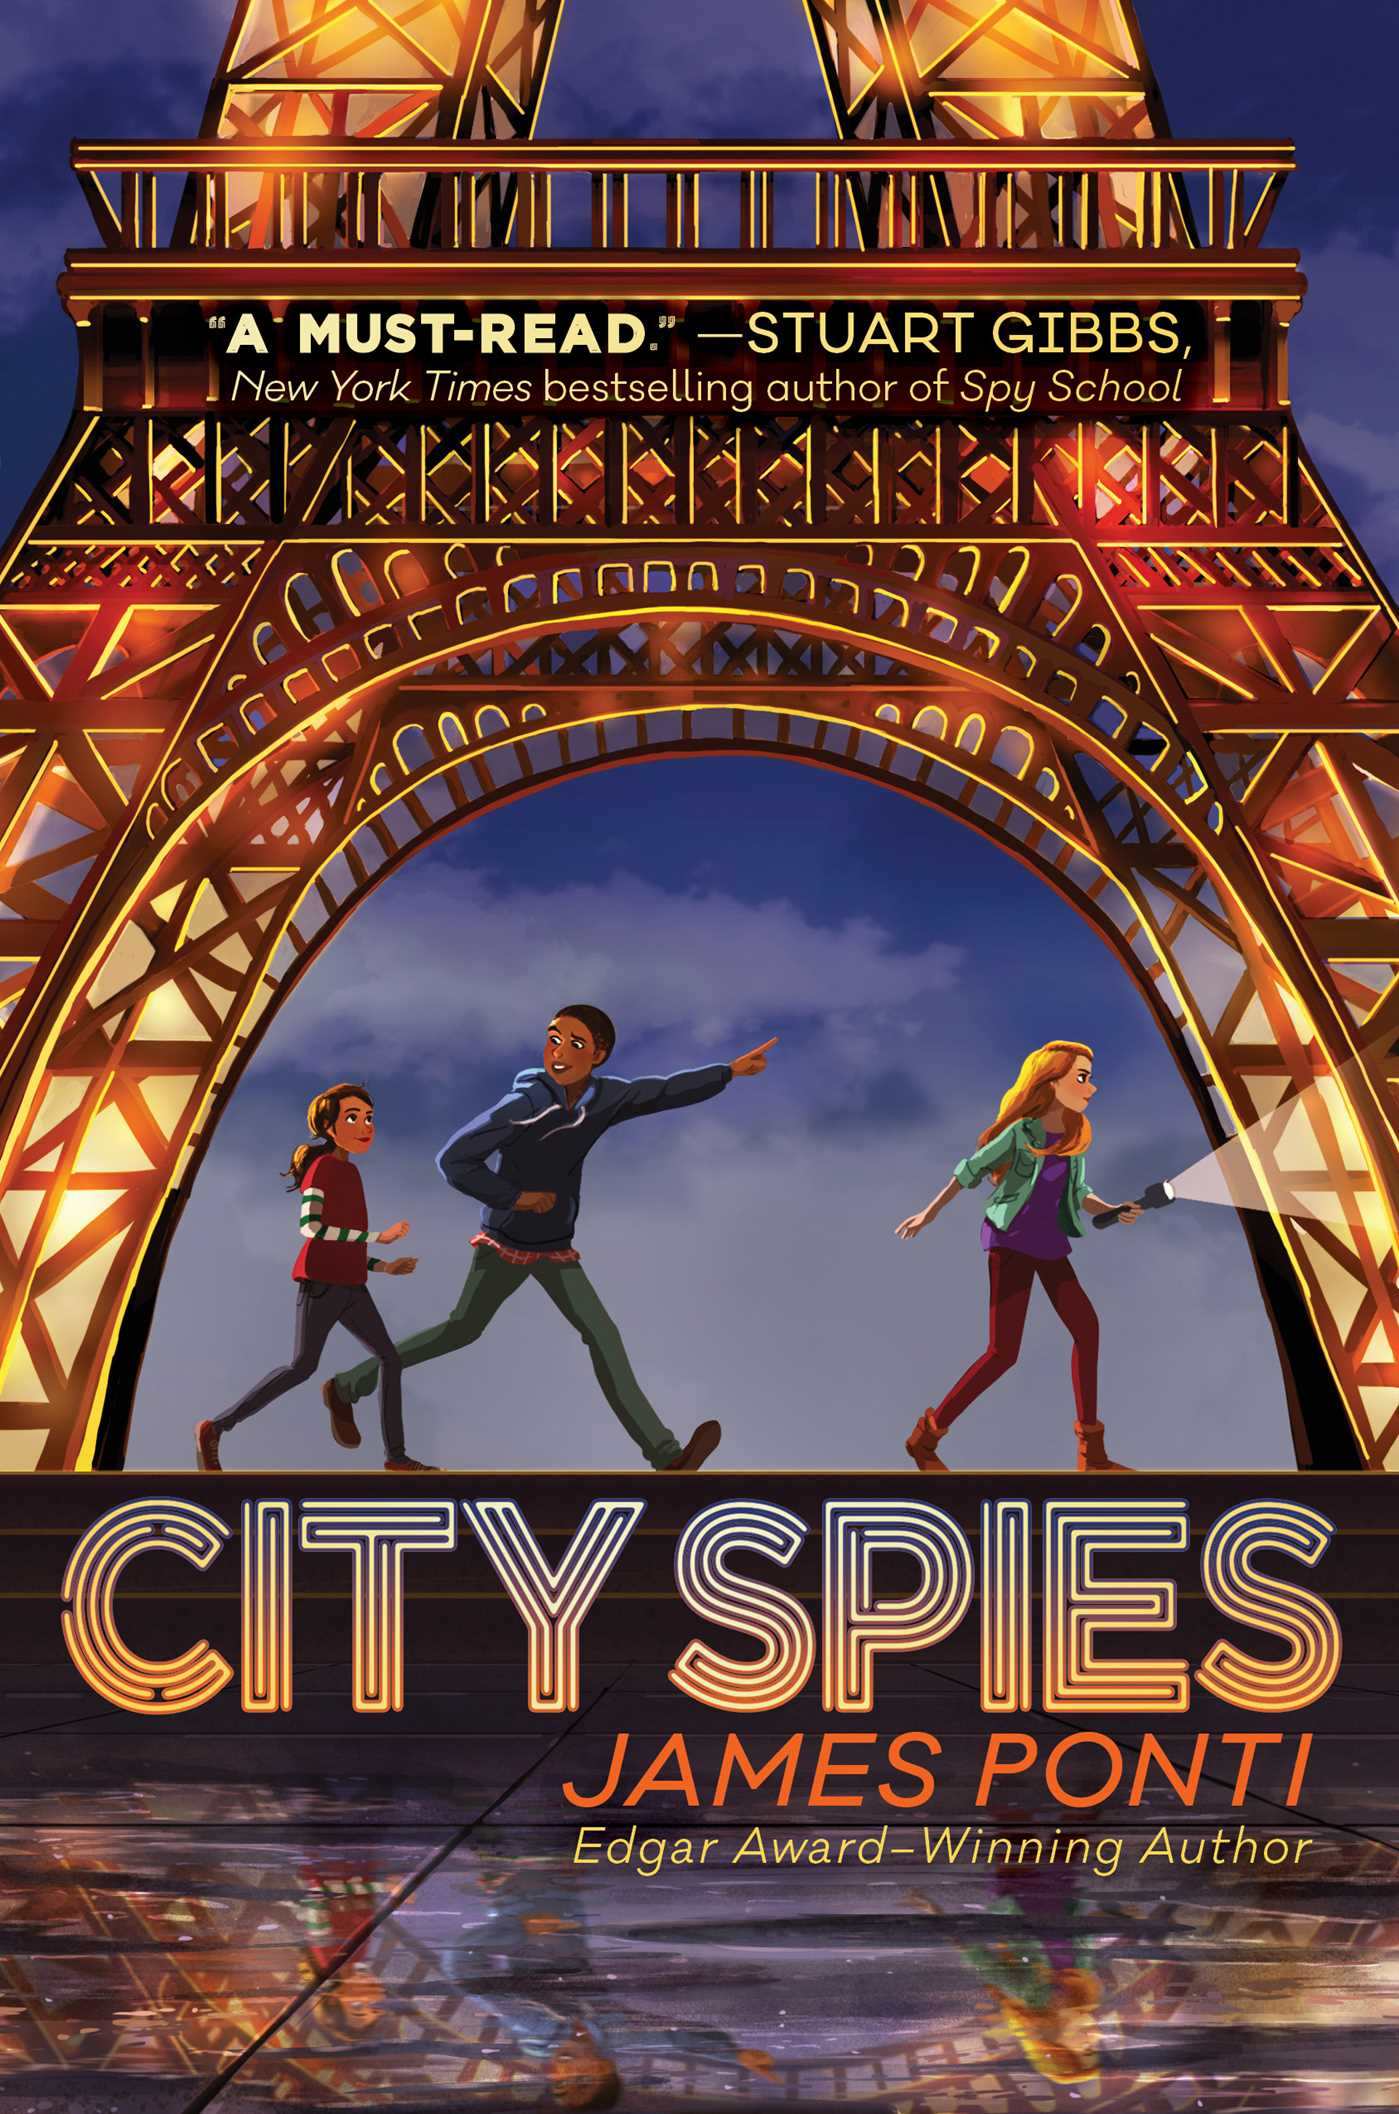 City Spies Blog Tour